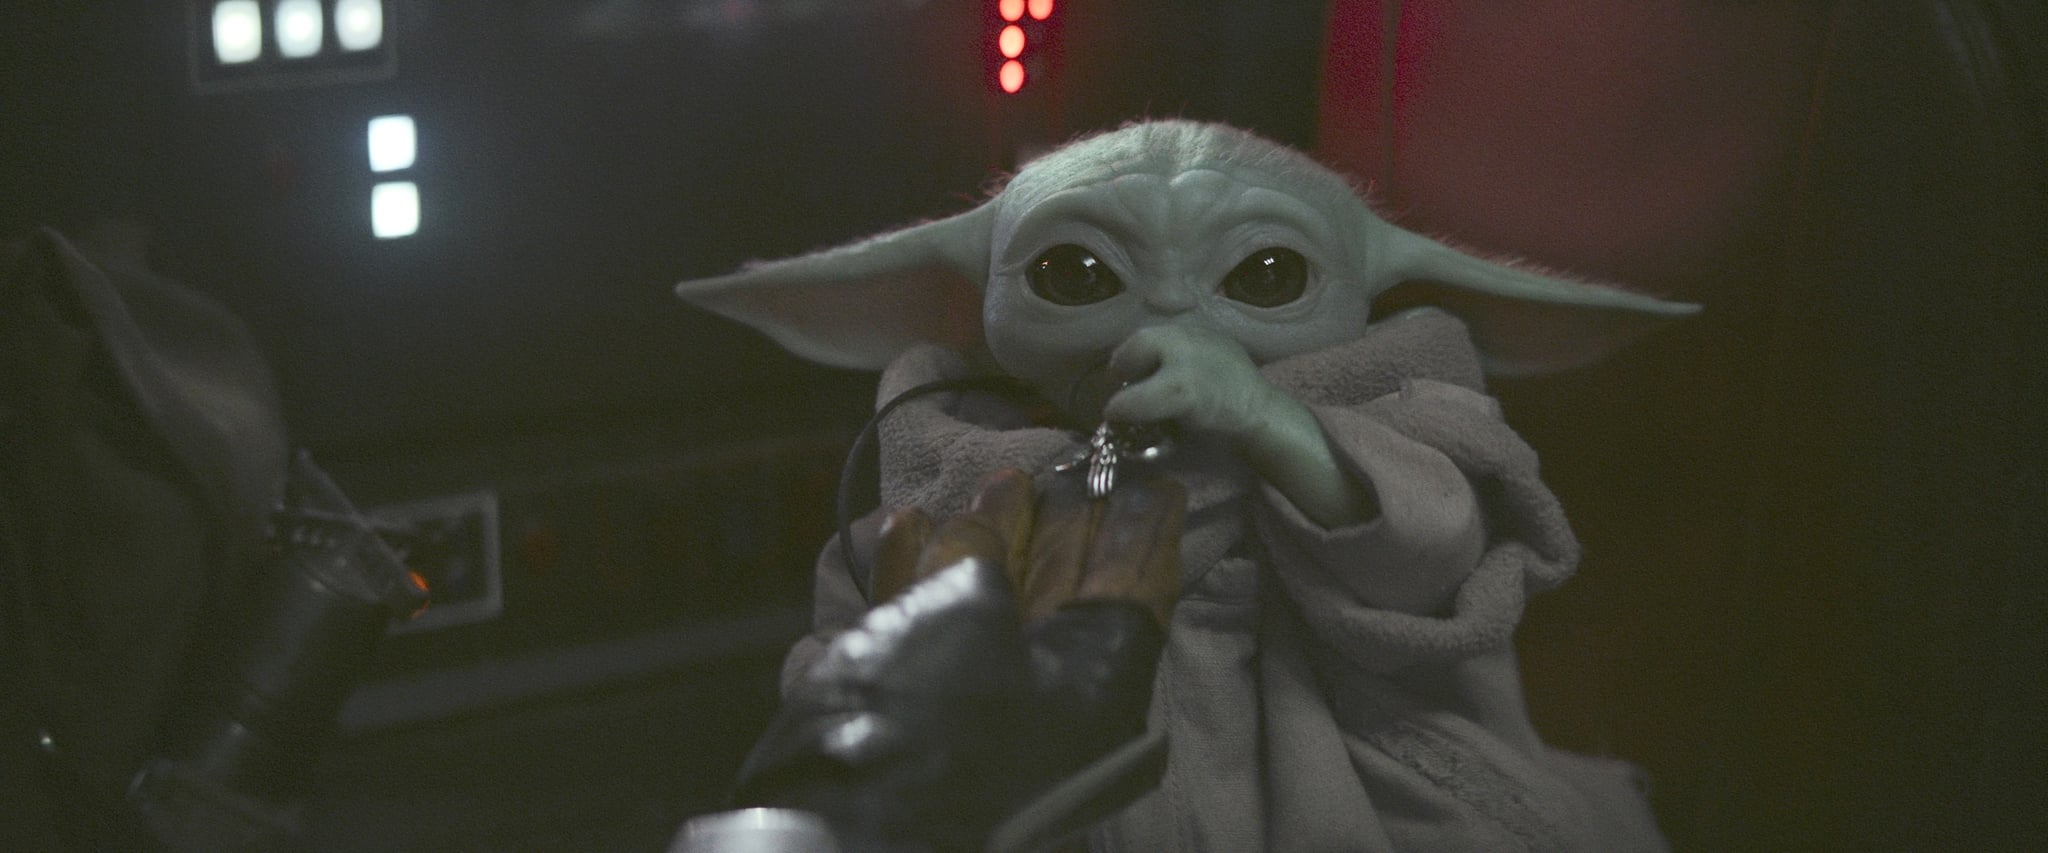 THE MANDALORIAN, The Child (aka Baby Yoda), 'Chapter 8: Redemption', (Season 1, ep. 108, aired Dec. 27, 2019). photo: Disney+/Lucasfilm / courtesy Everett Collection